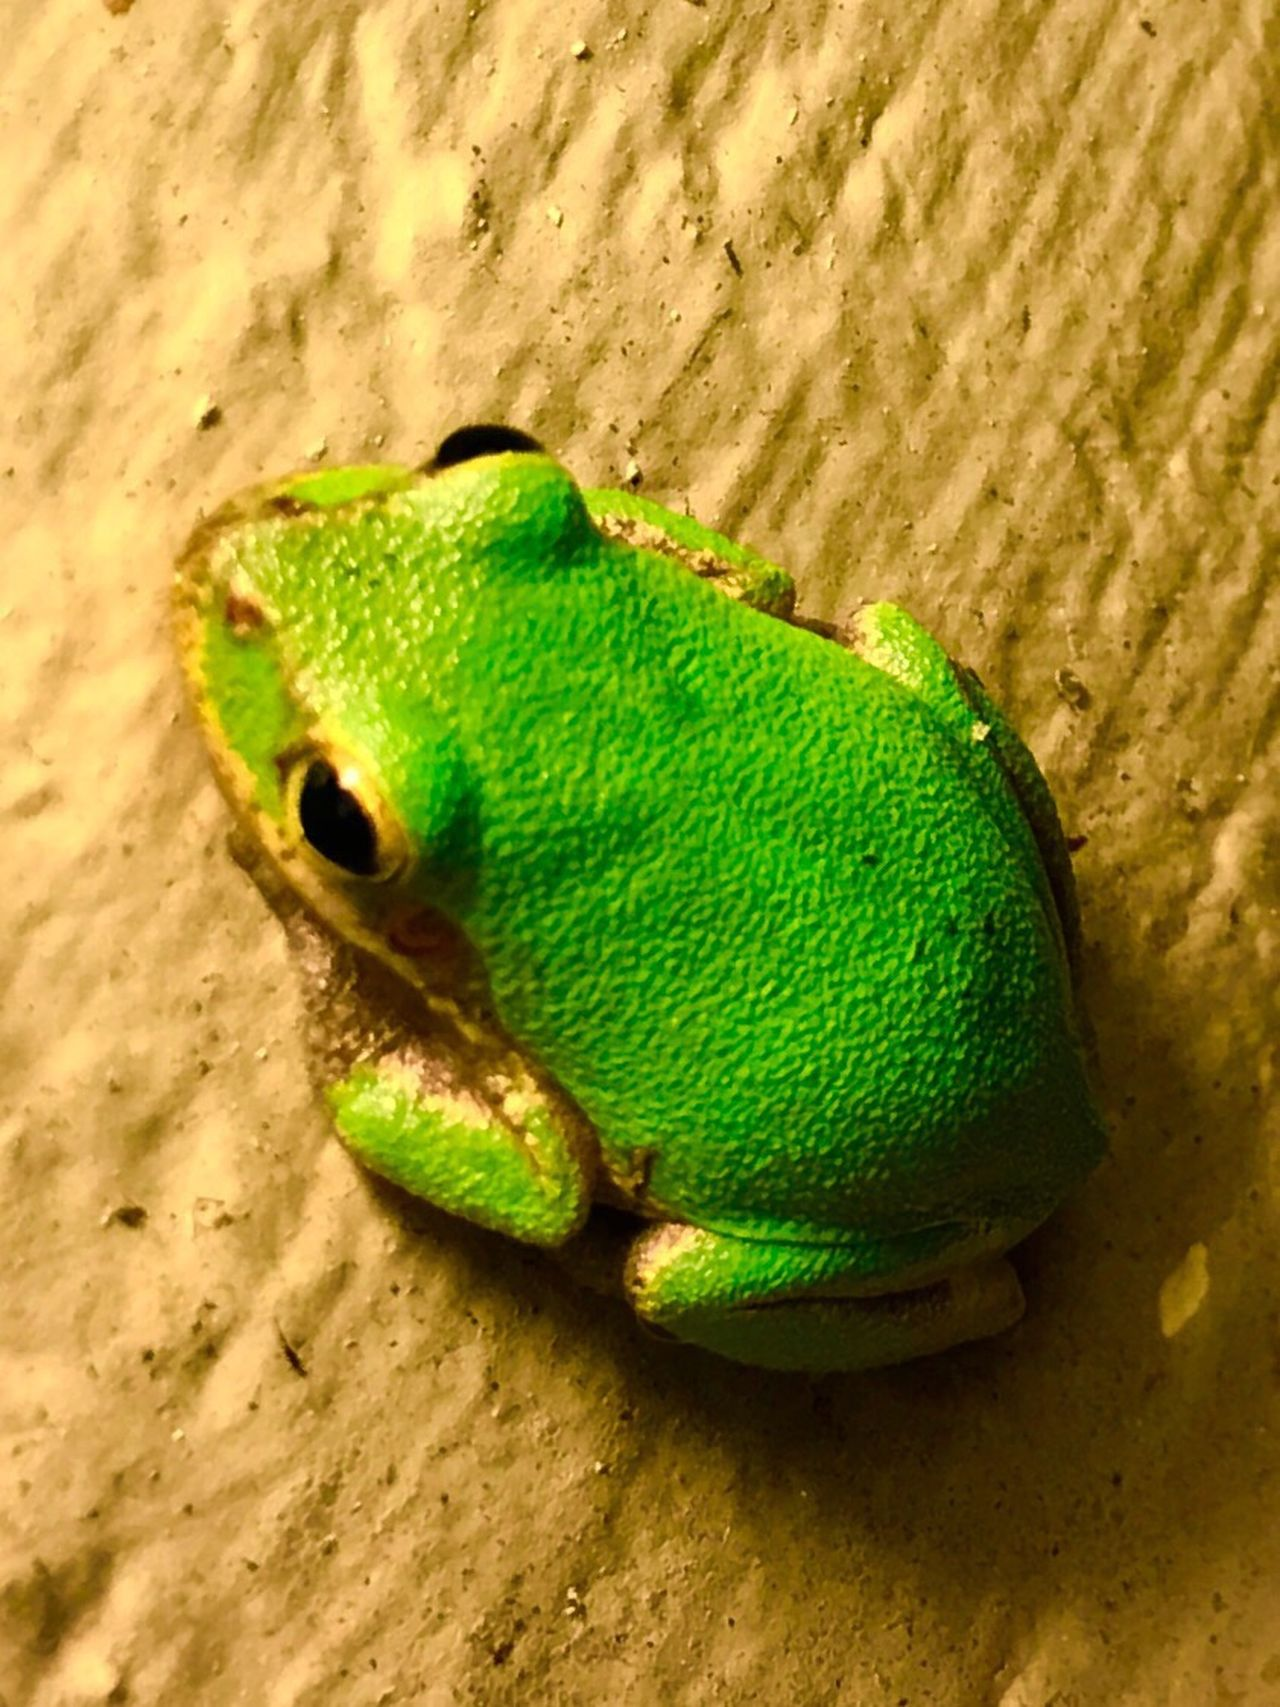 Friday night frog Frog Greenfrog Treefrog Nature Nature_collection Nature Photography Nature On Your Doorstep Amphibian Animal Themes One Animal Green Color Close-up Green Wildlife Vibrant Color